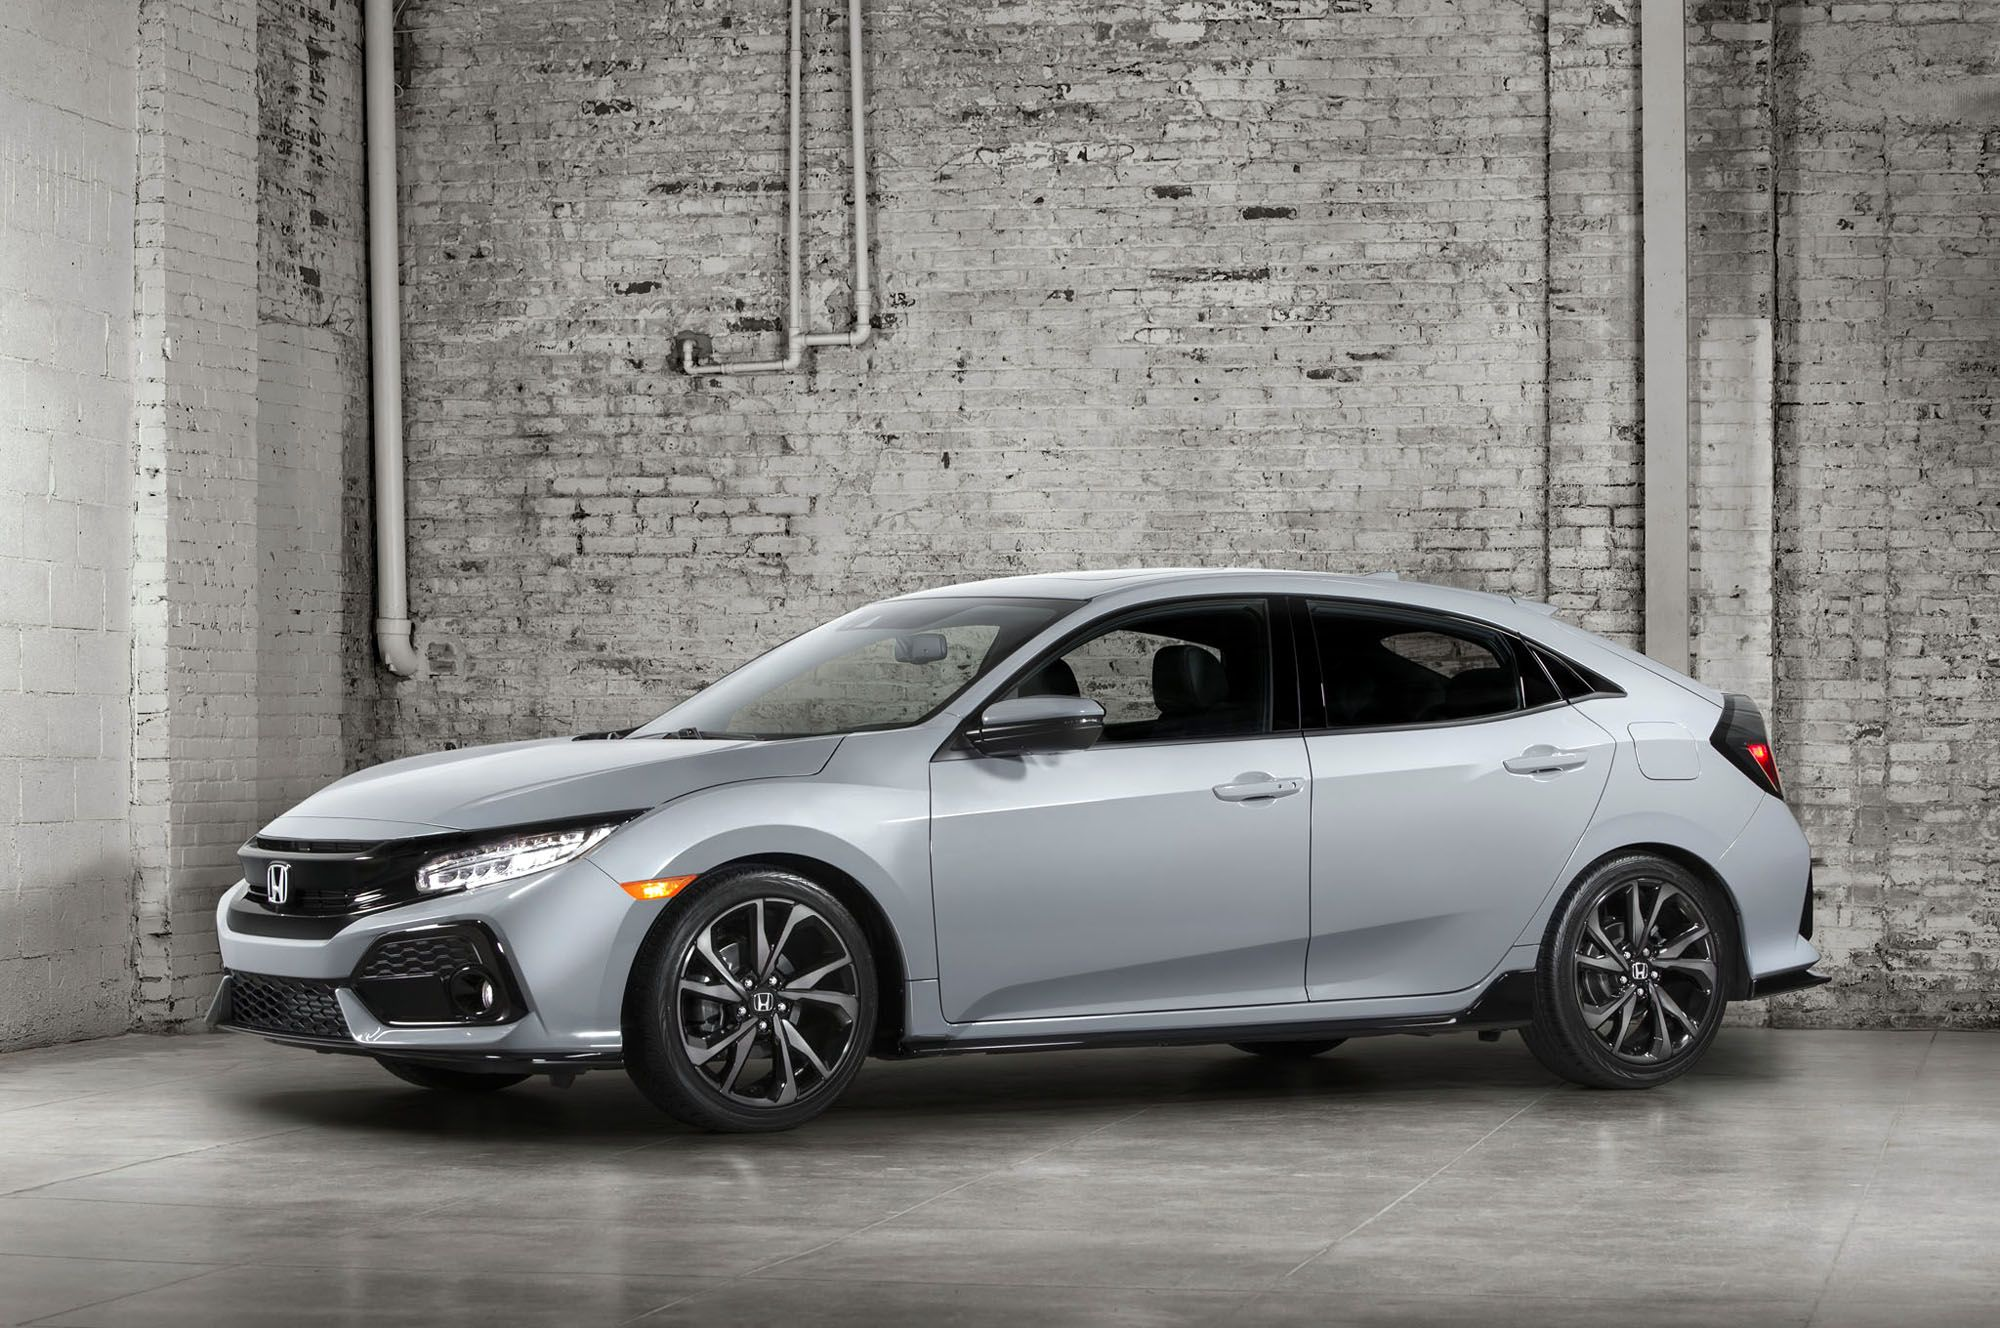 2017 Honda Civic Hatchback Wallpaper